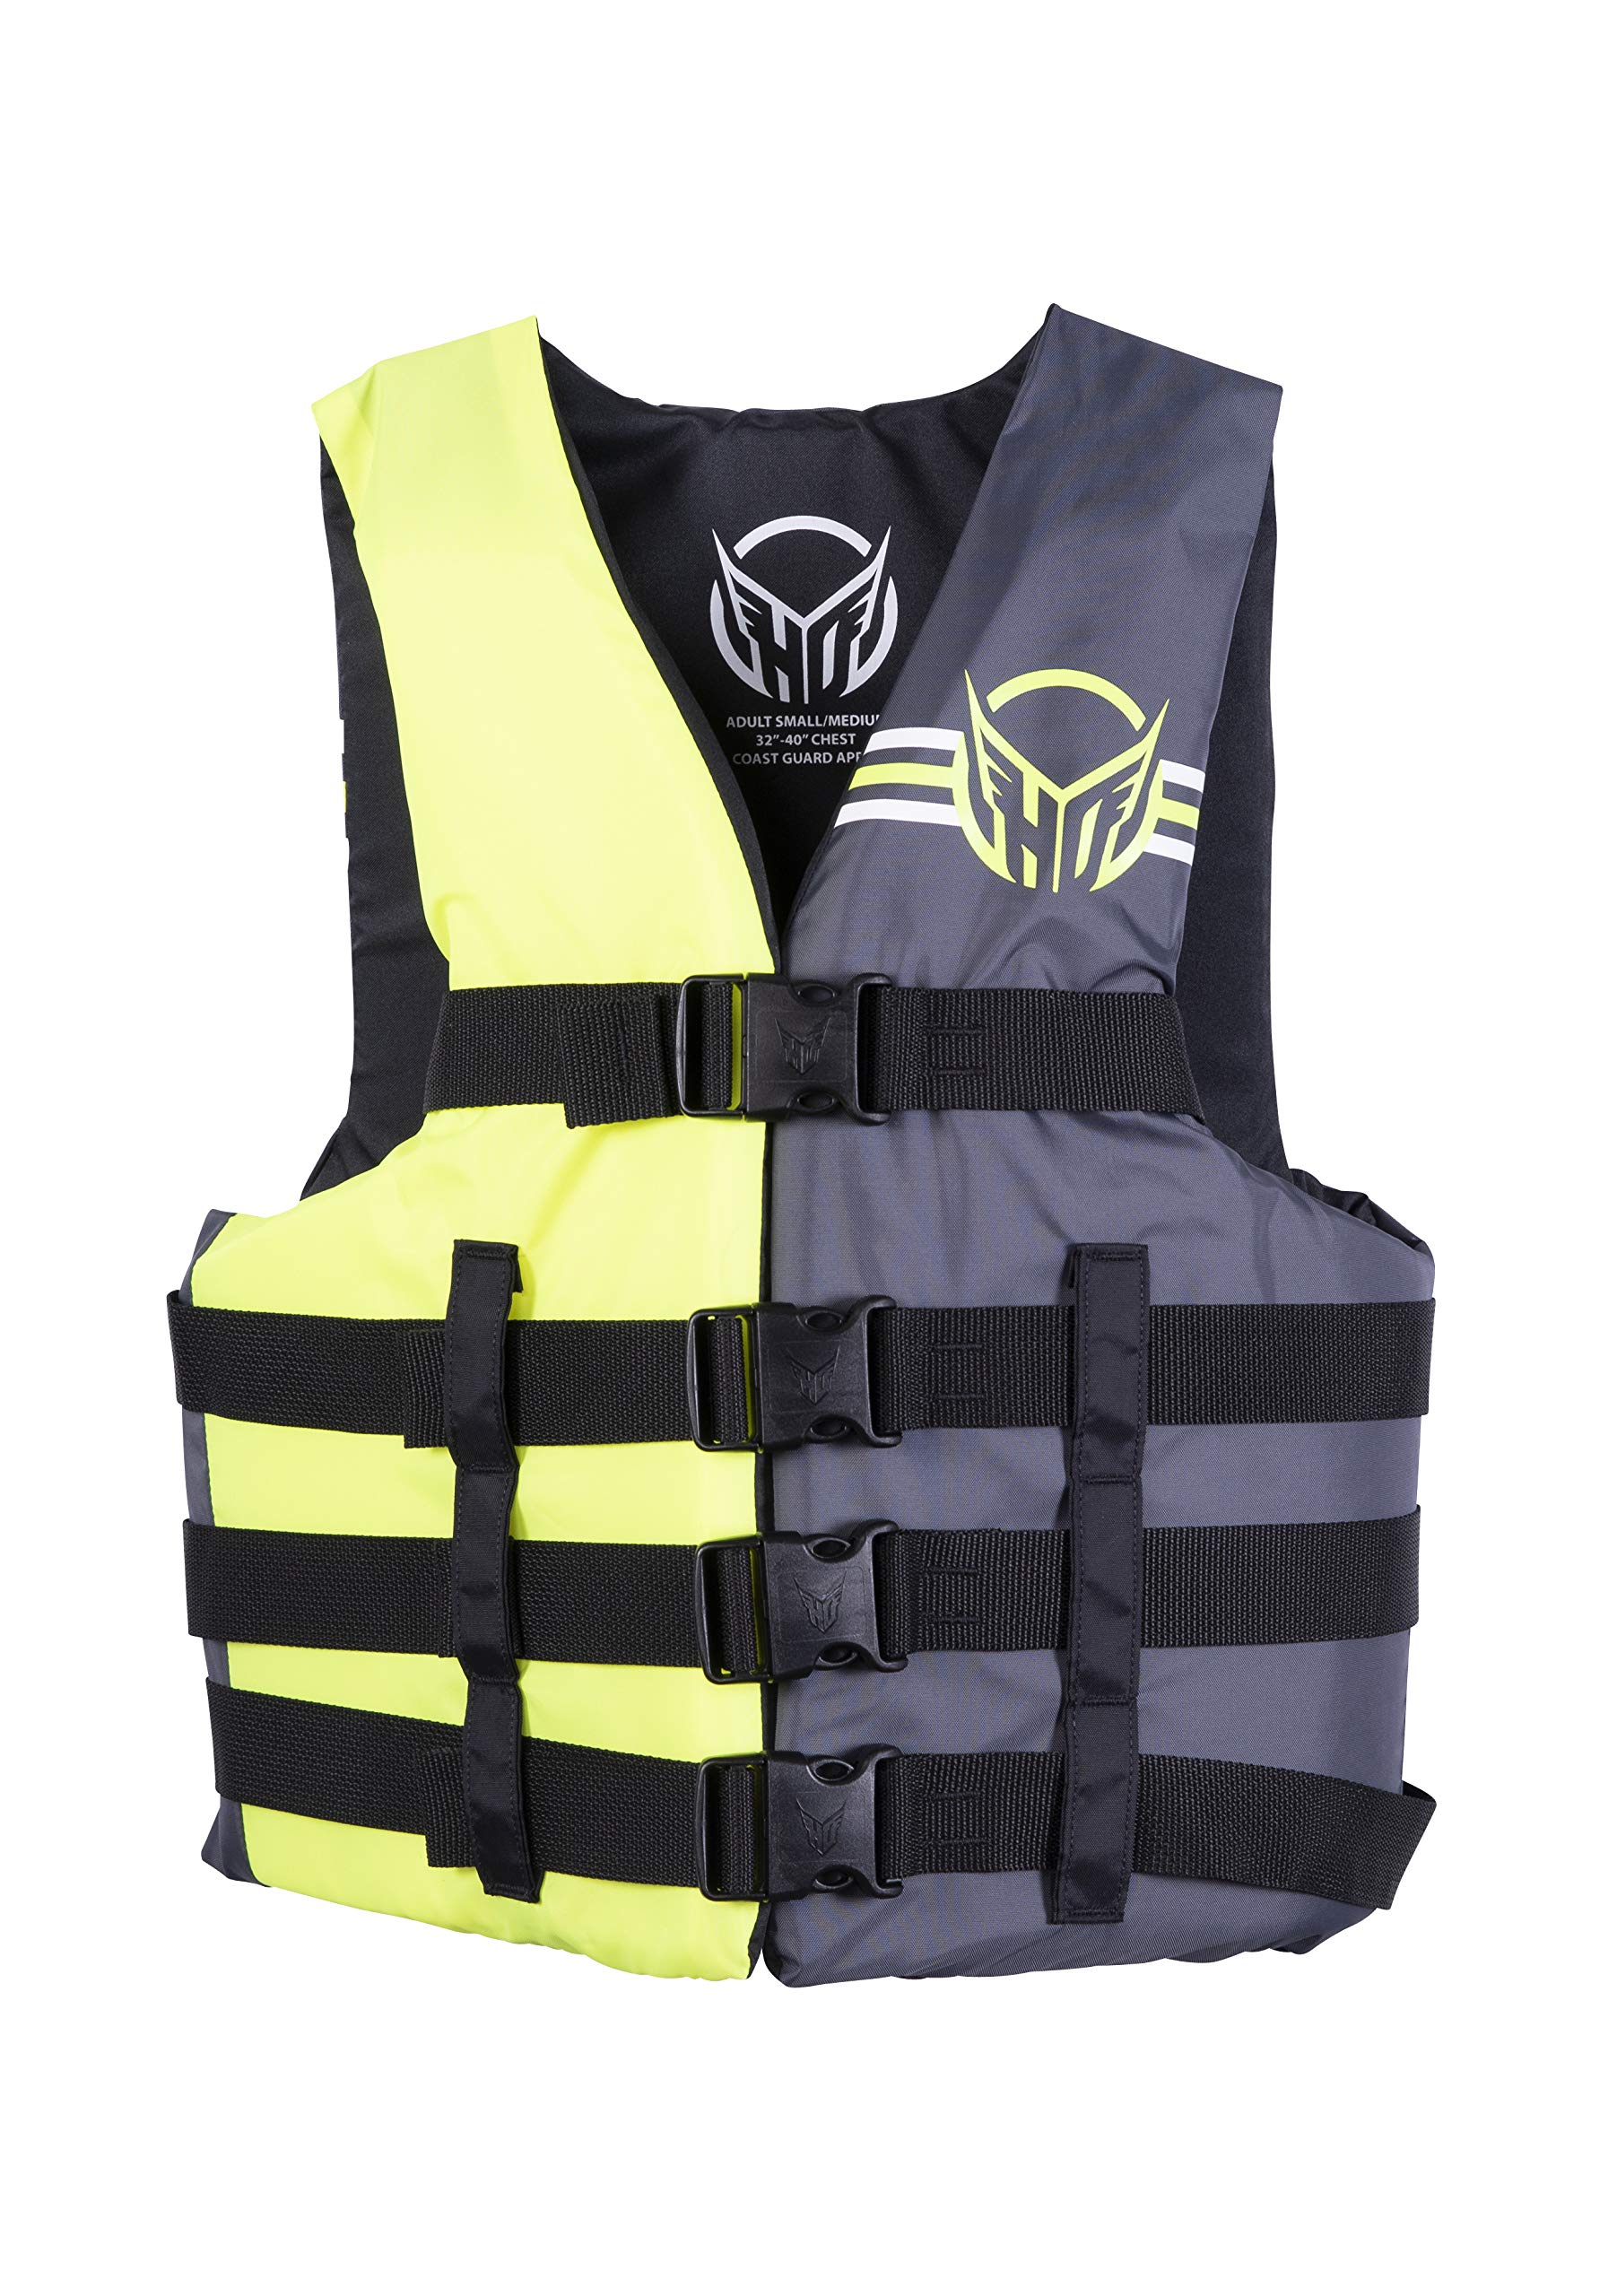 HO Sports Mens Universal Ski Wakeboard Wakesurf Vest Jacket Yellow/Ash SXL by HO